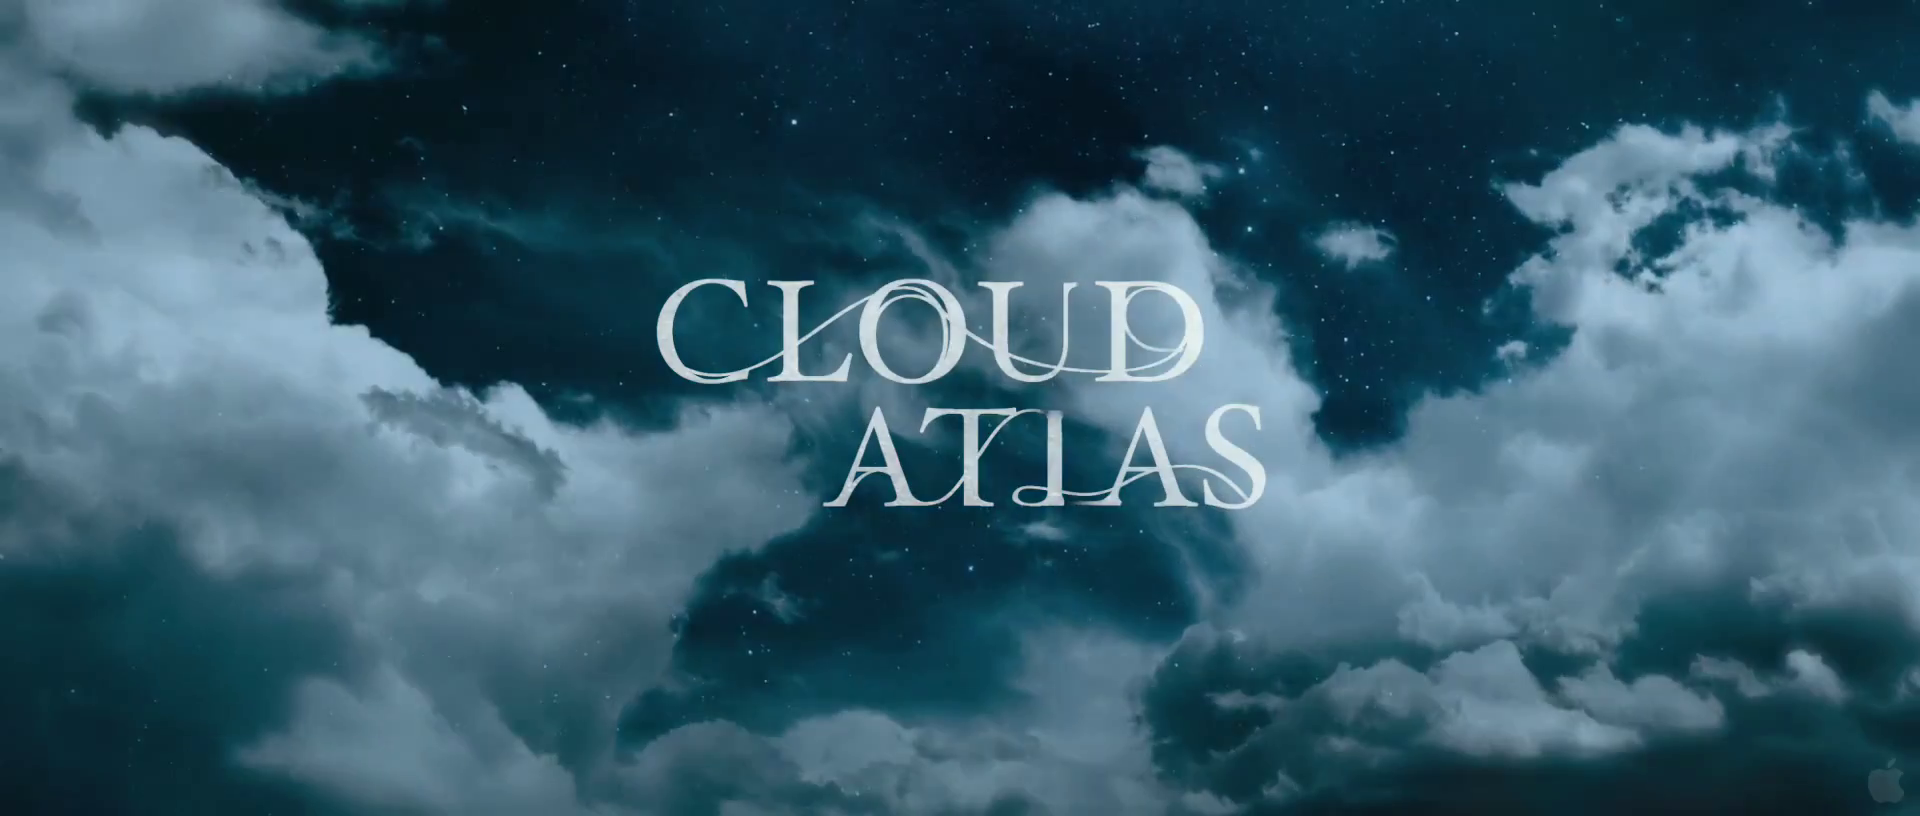 Cloud Atlas - Wikipedi...